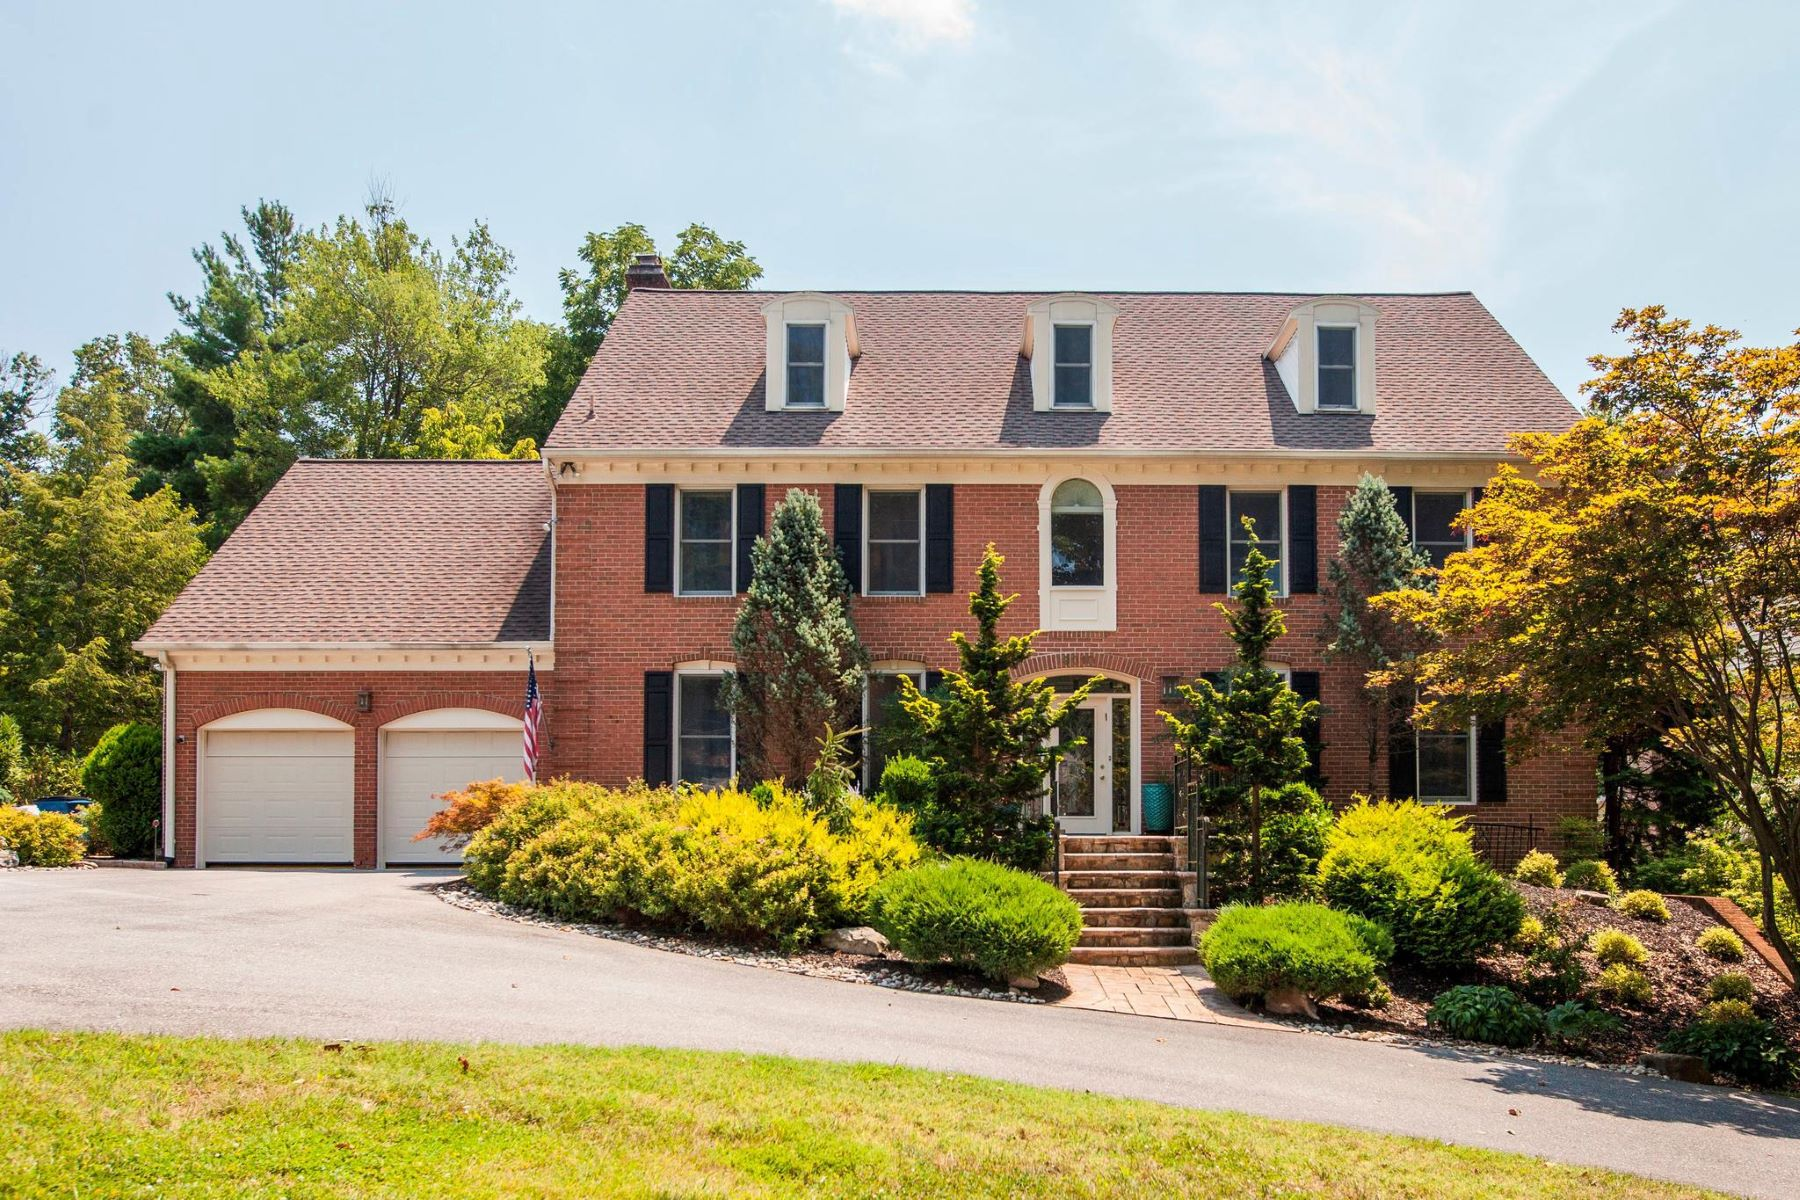 Single Family Homes for Active at 9010 Marseille Dr Potomac, Maryland 20854 United States